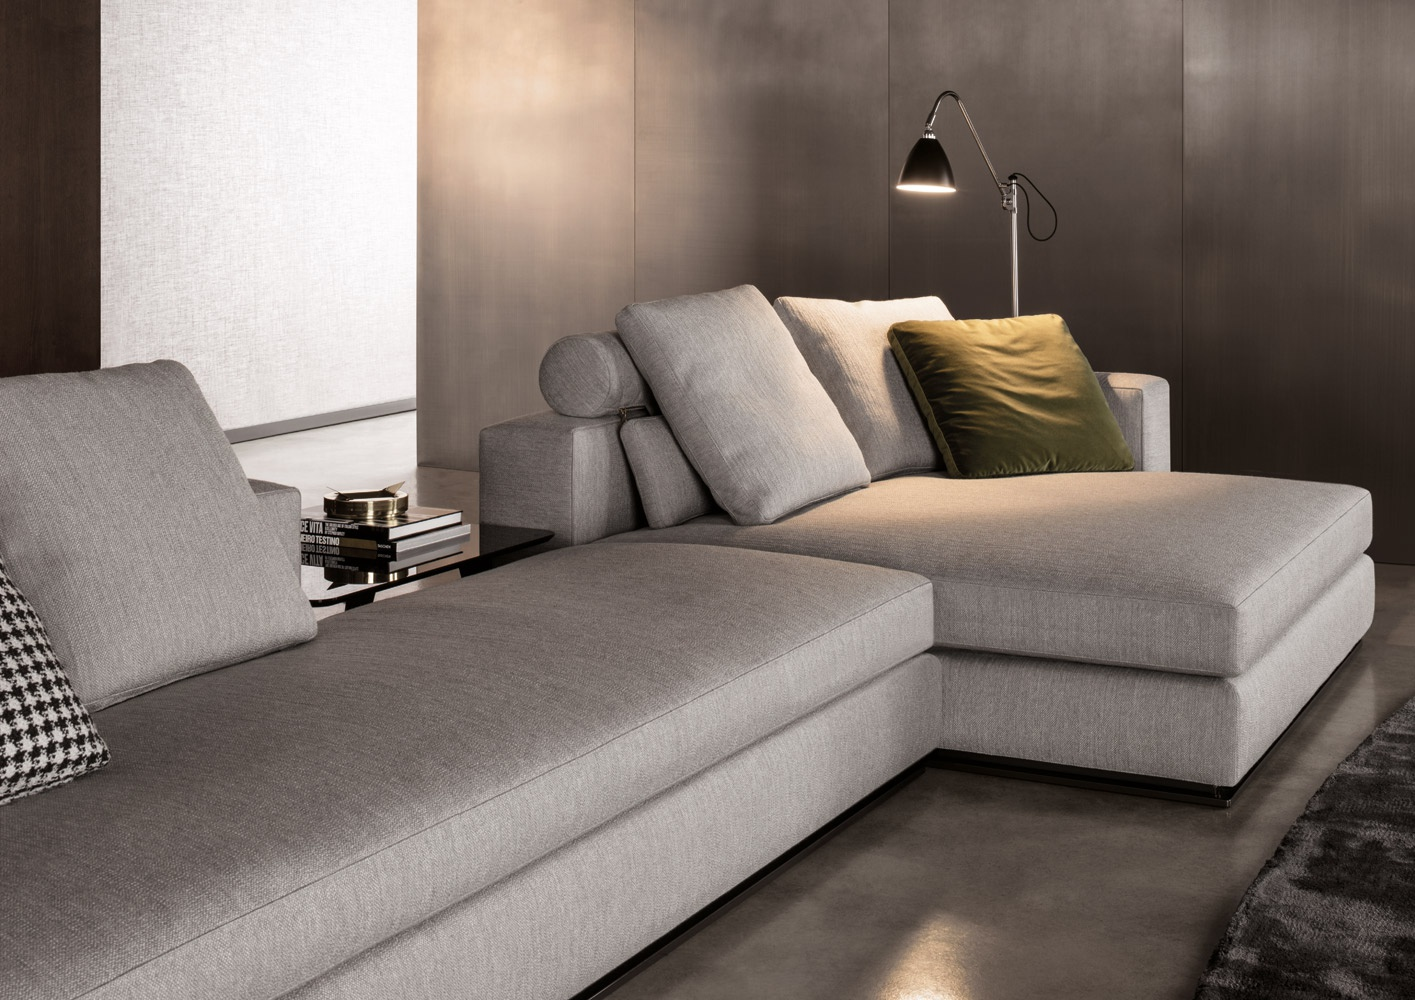 Full Size of Minotti Sofa Outlet Freeman Alexander Preise Couch For Sale List Seating System Range Cad Block India Size Sleeper Uk Modulares Zum Entspannen Donovan Leinen Sofa Minotti Sofa